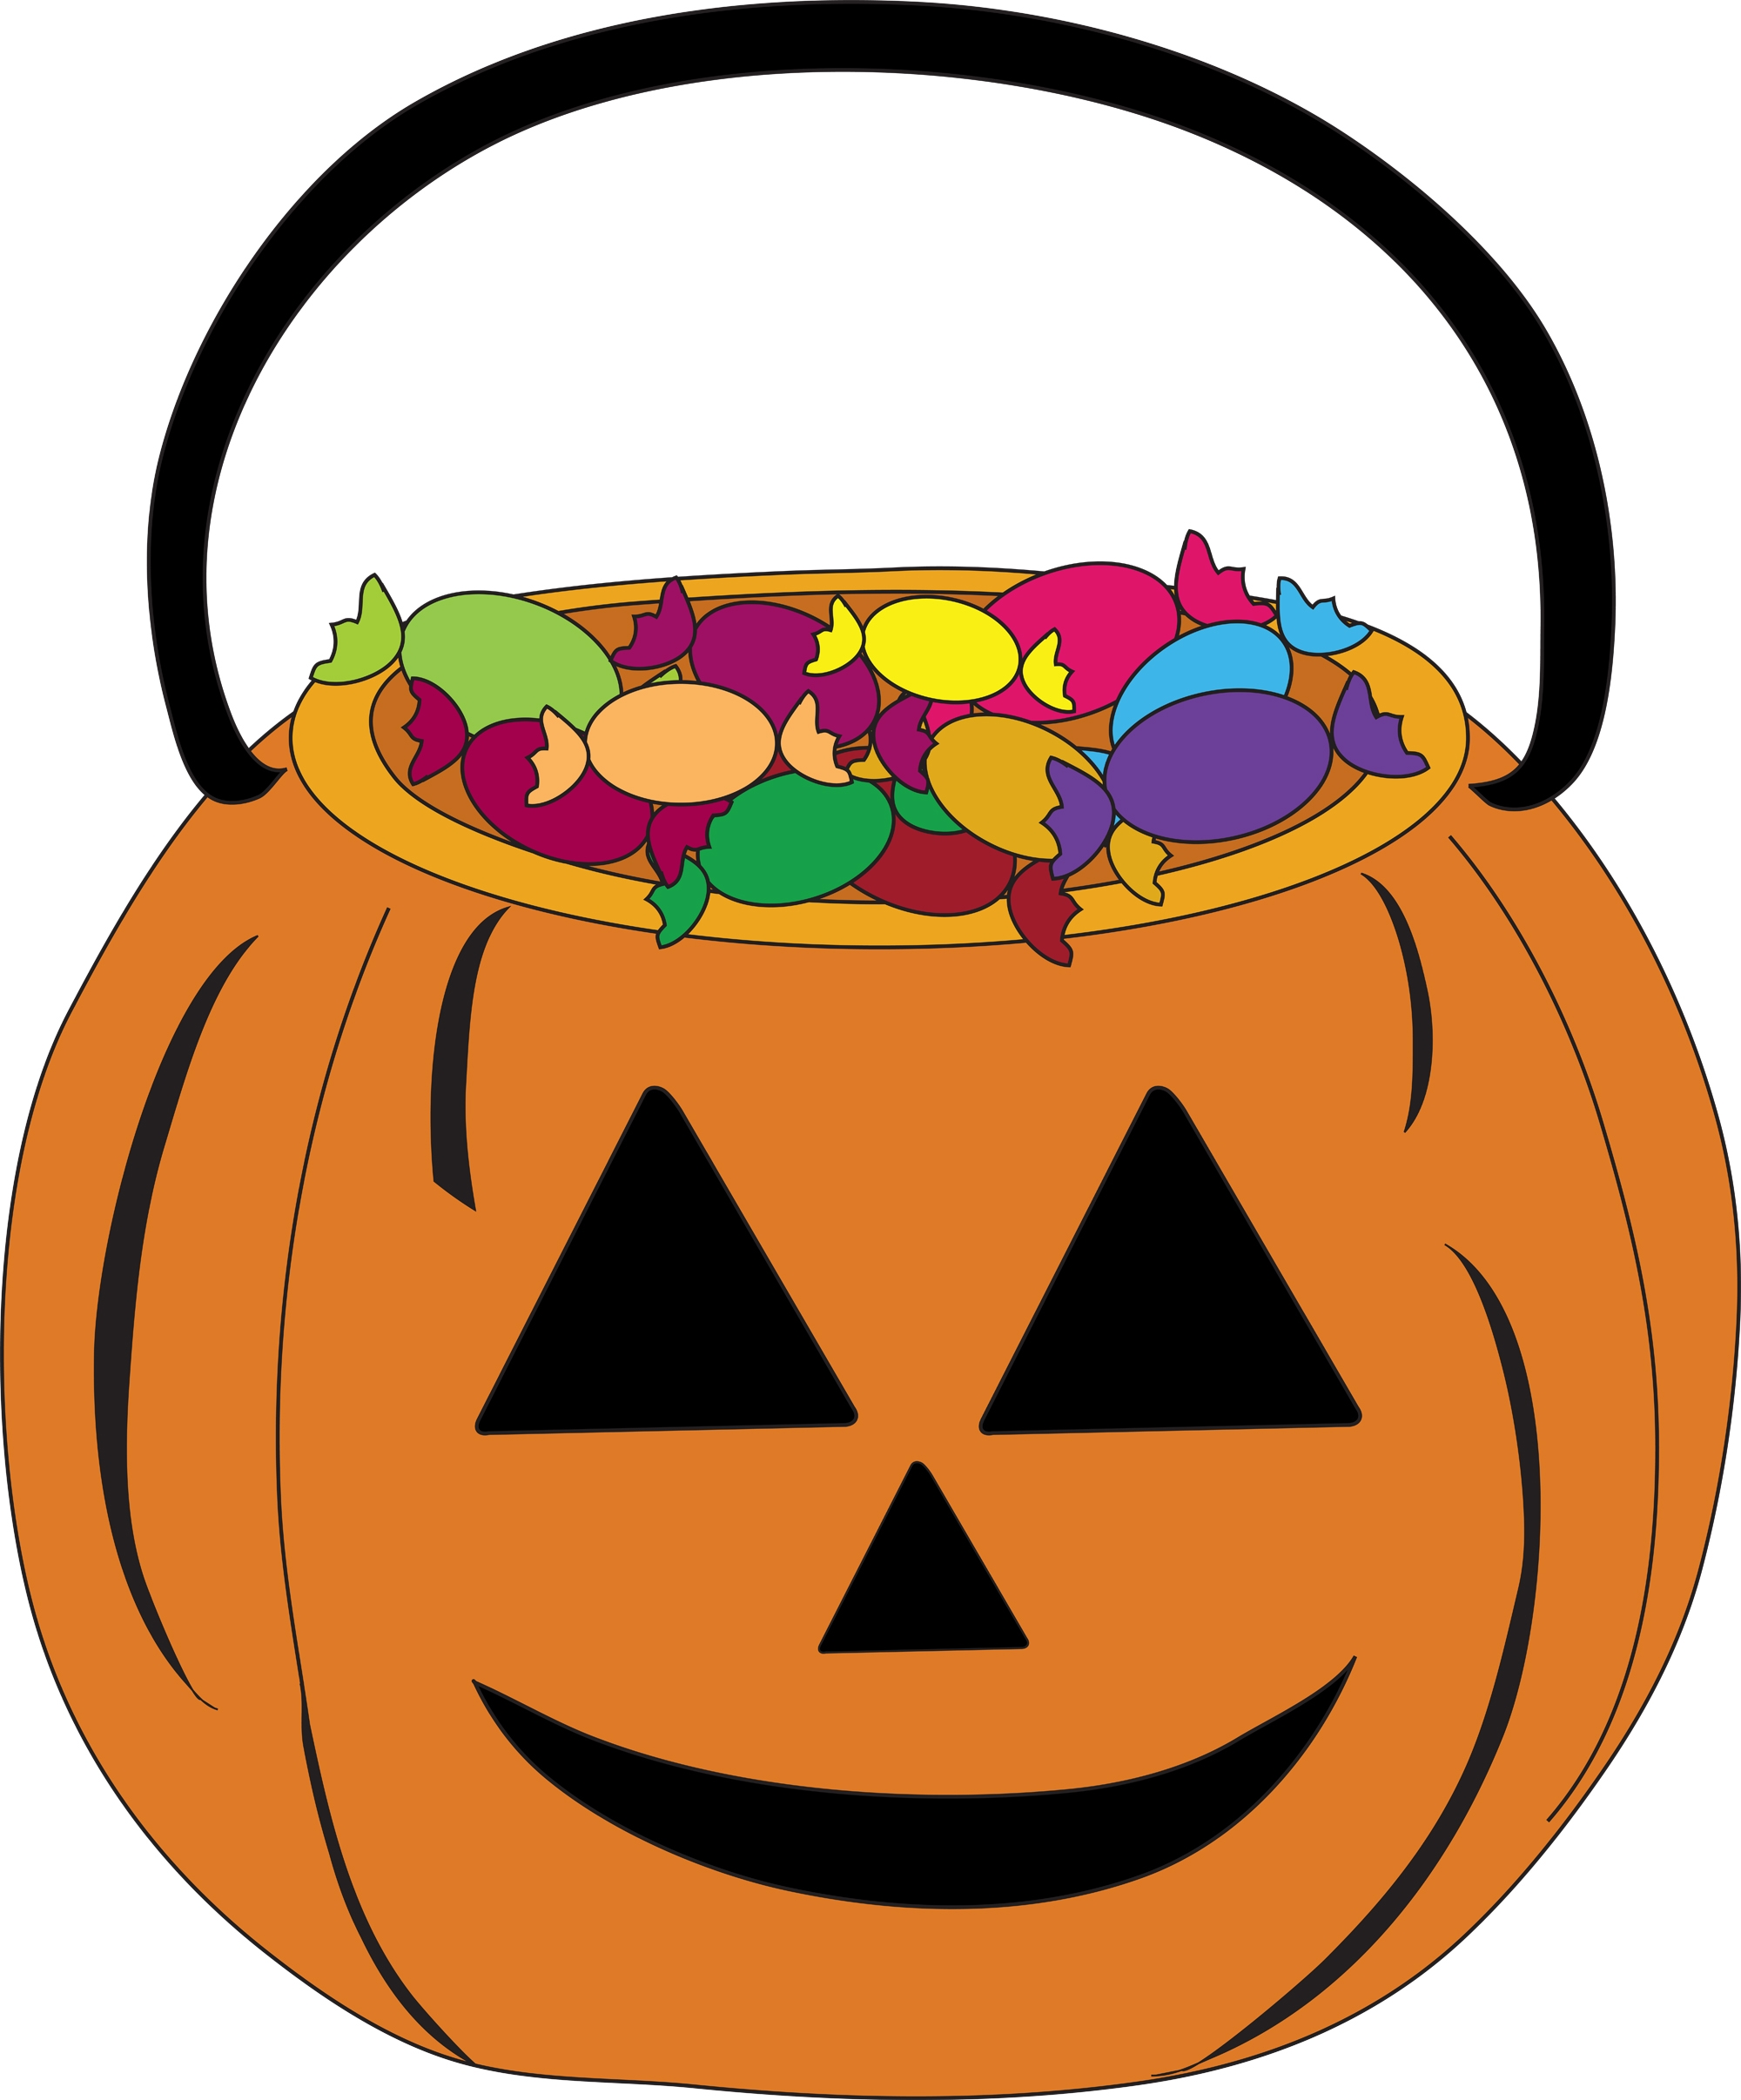 Free Candy Bowl Cliparts, Download Free Clip Art, Free Clip.